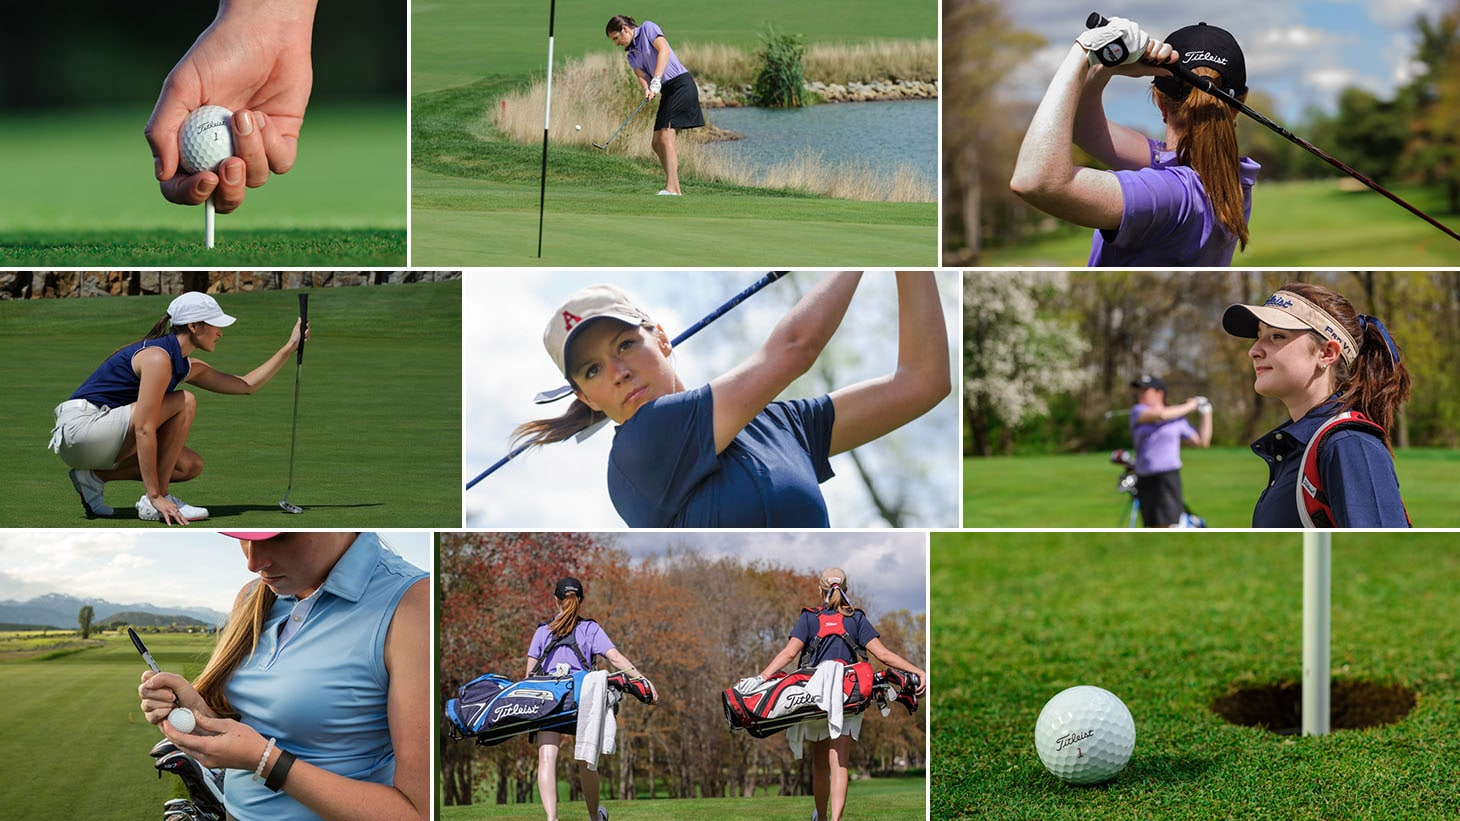 The #1 Ball at the 2017 NCAA Division 1 Women's Golf